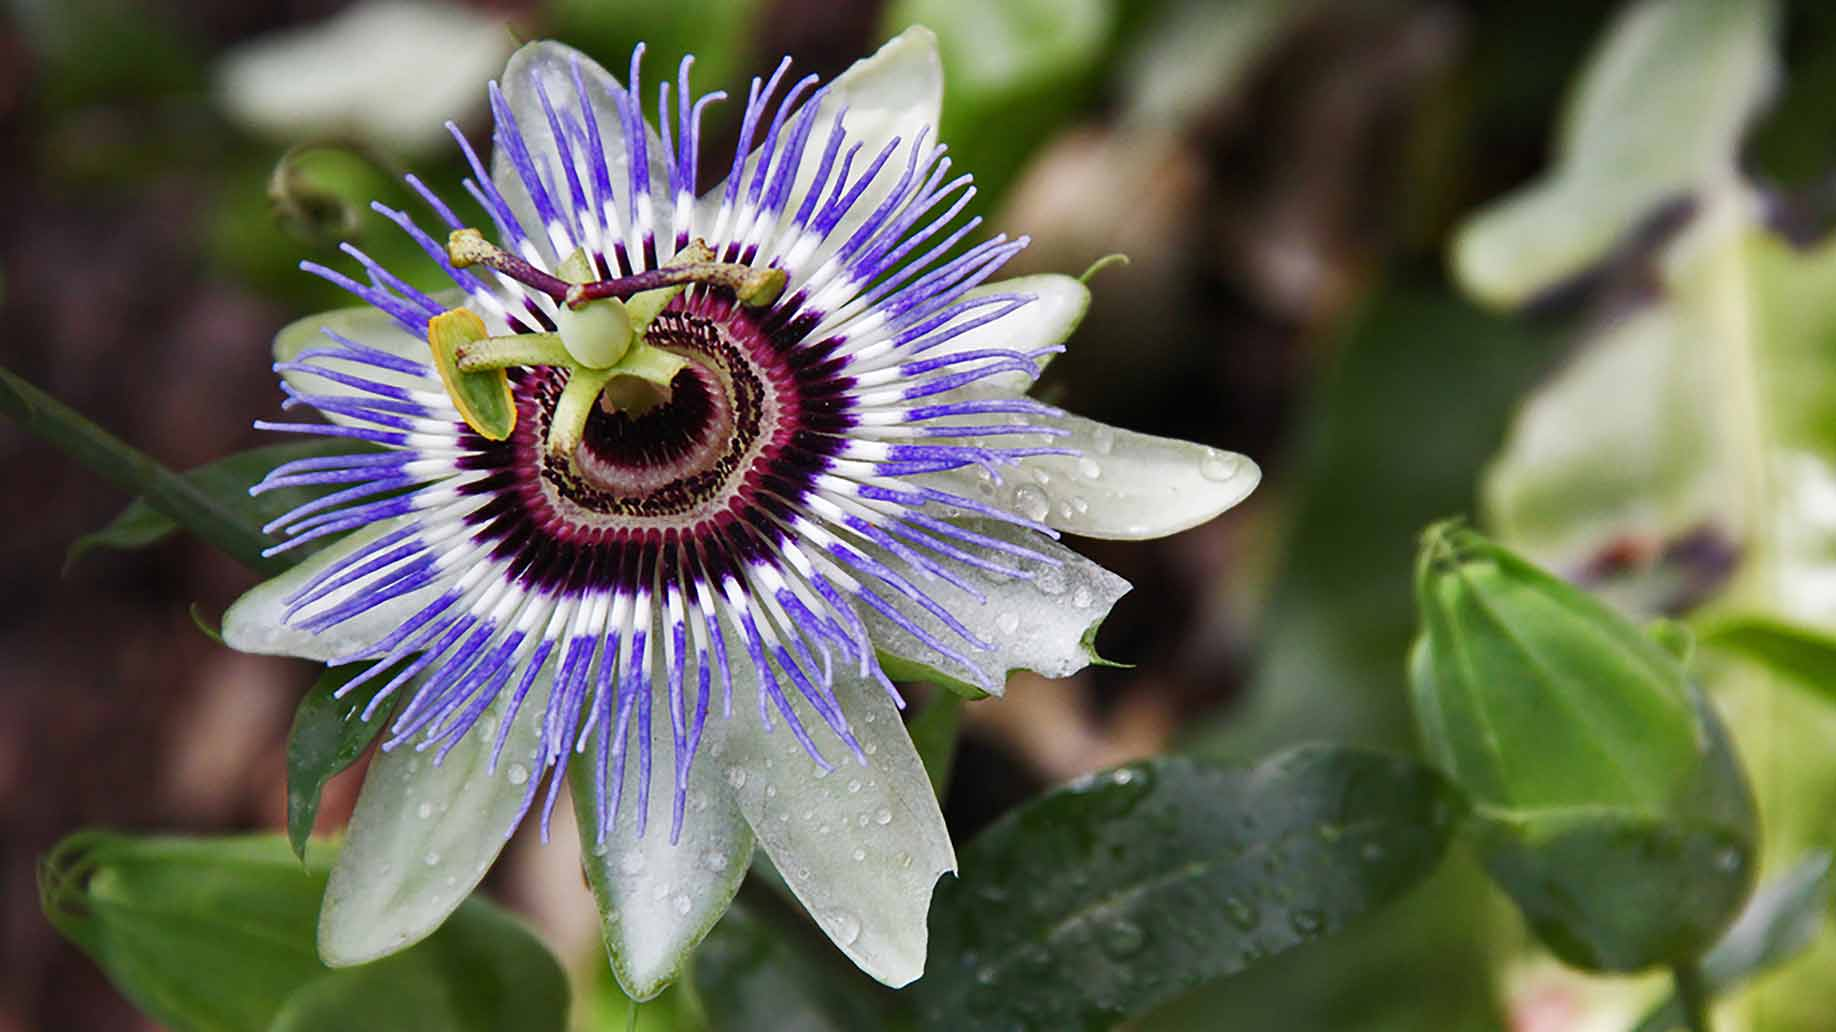 passion flower bloomed beautiful purple and white flower